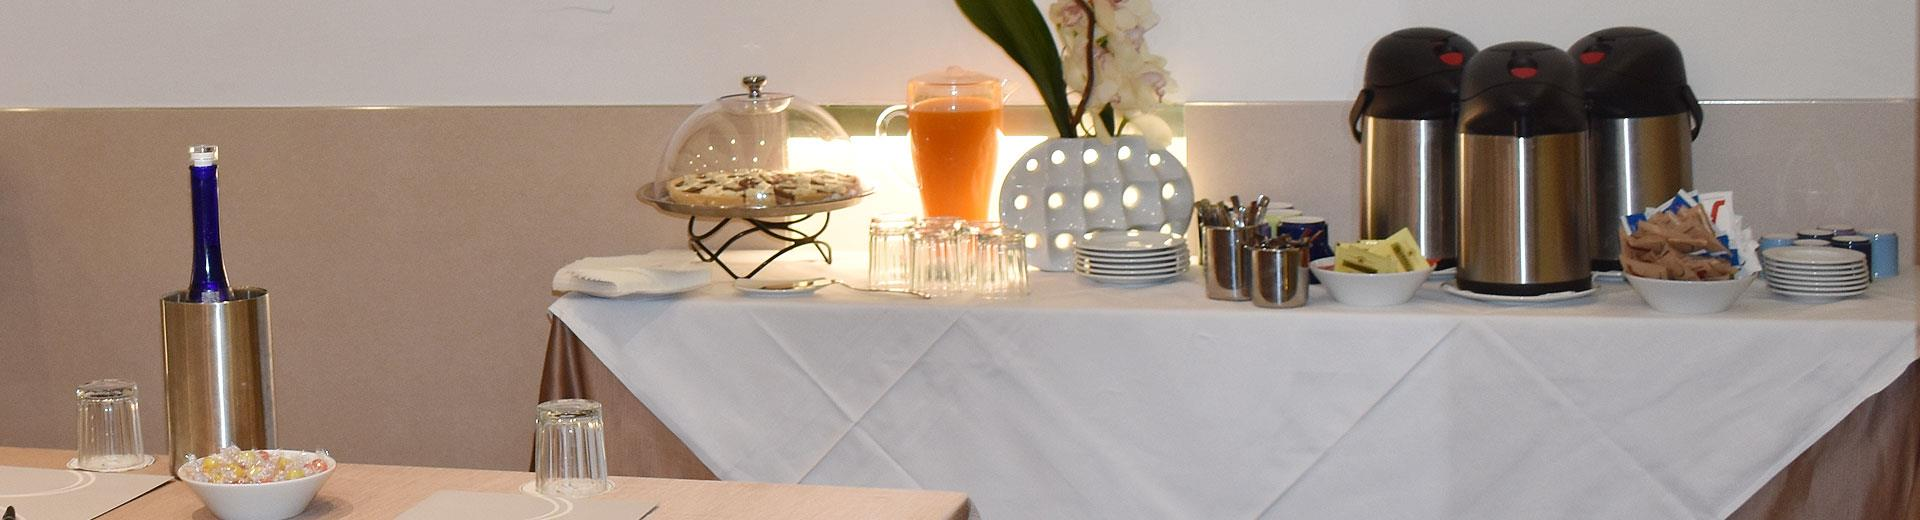 Personalized catering services: coffee breaks, aperitifs, light lunches